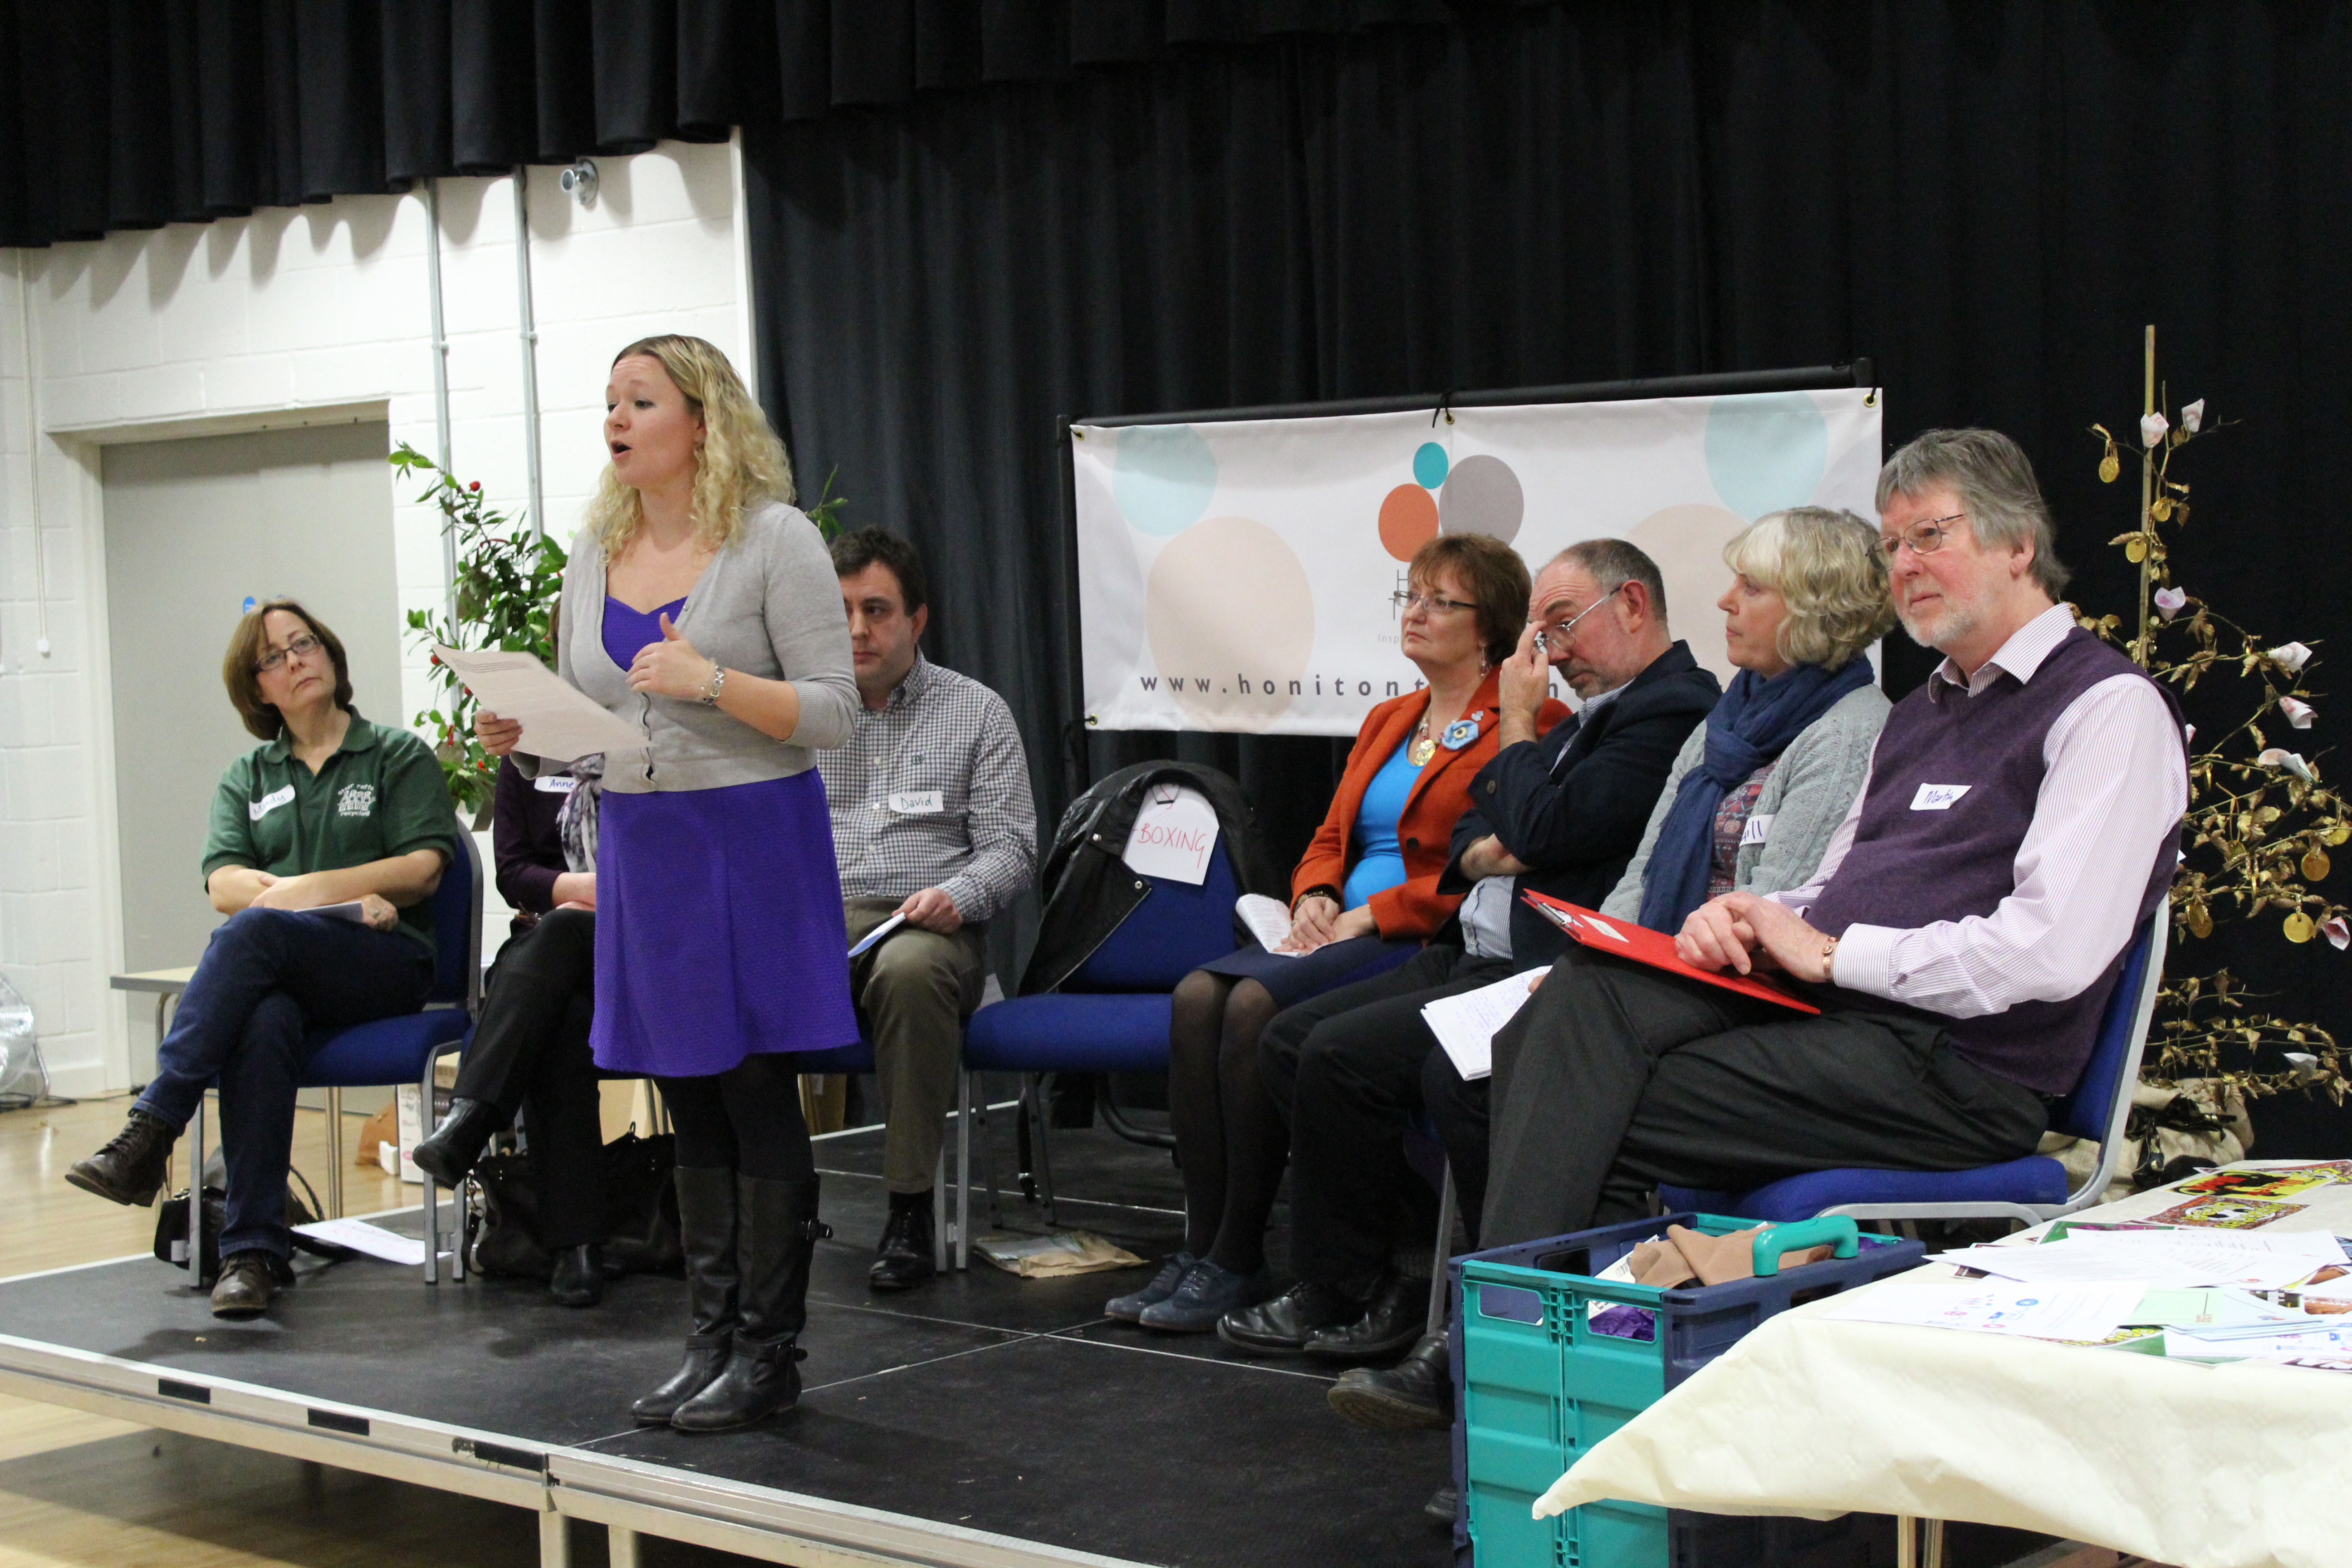 Honiton Together Community Dragons Den